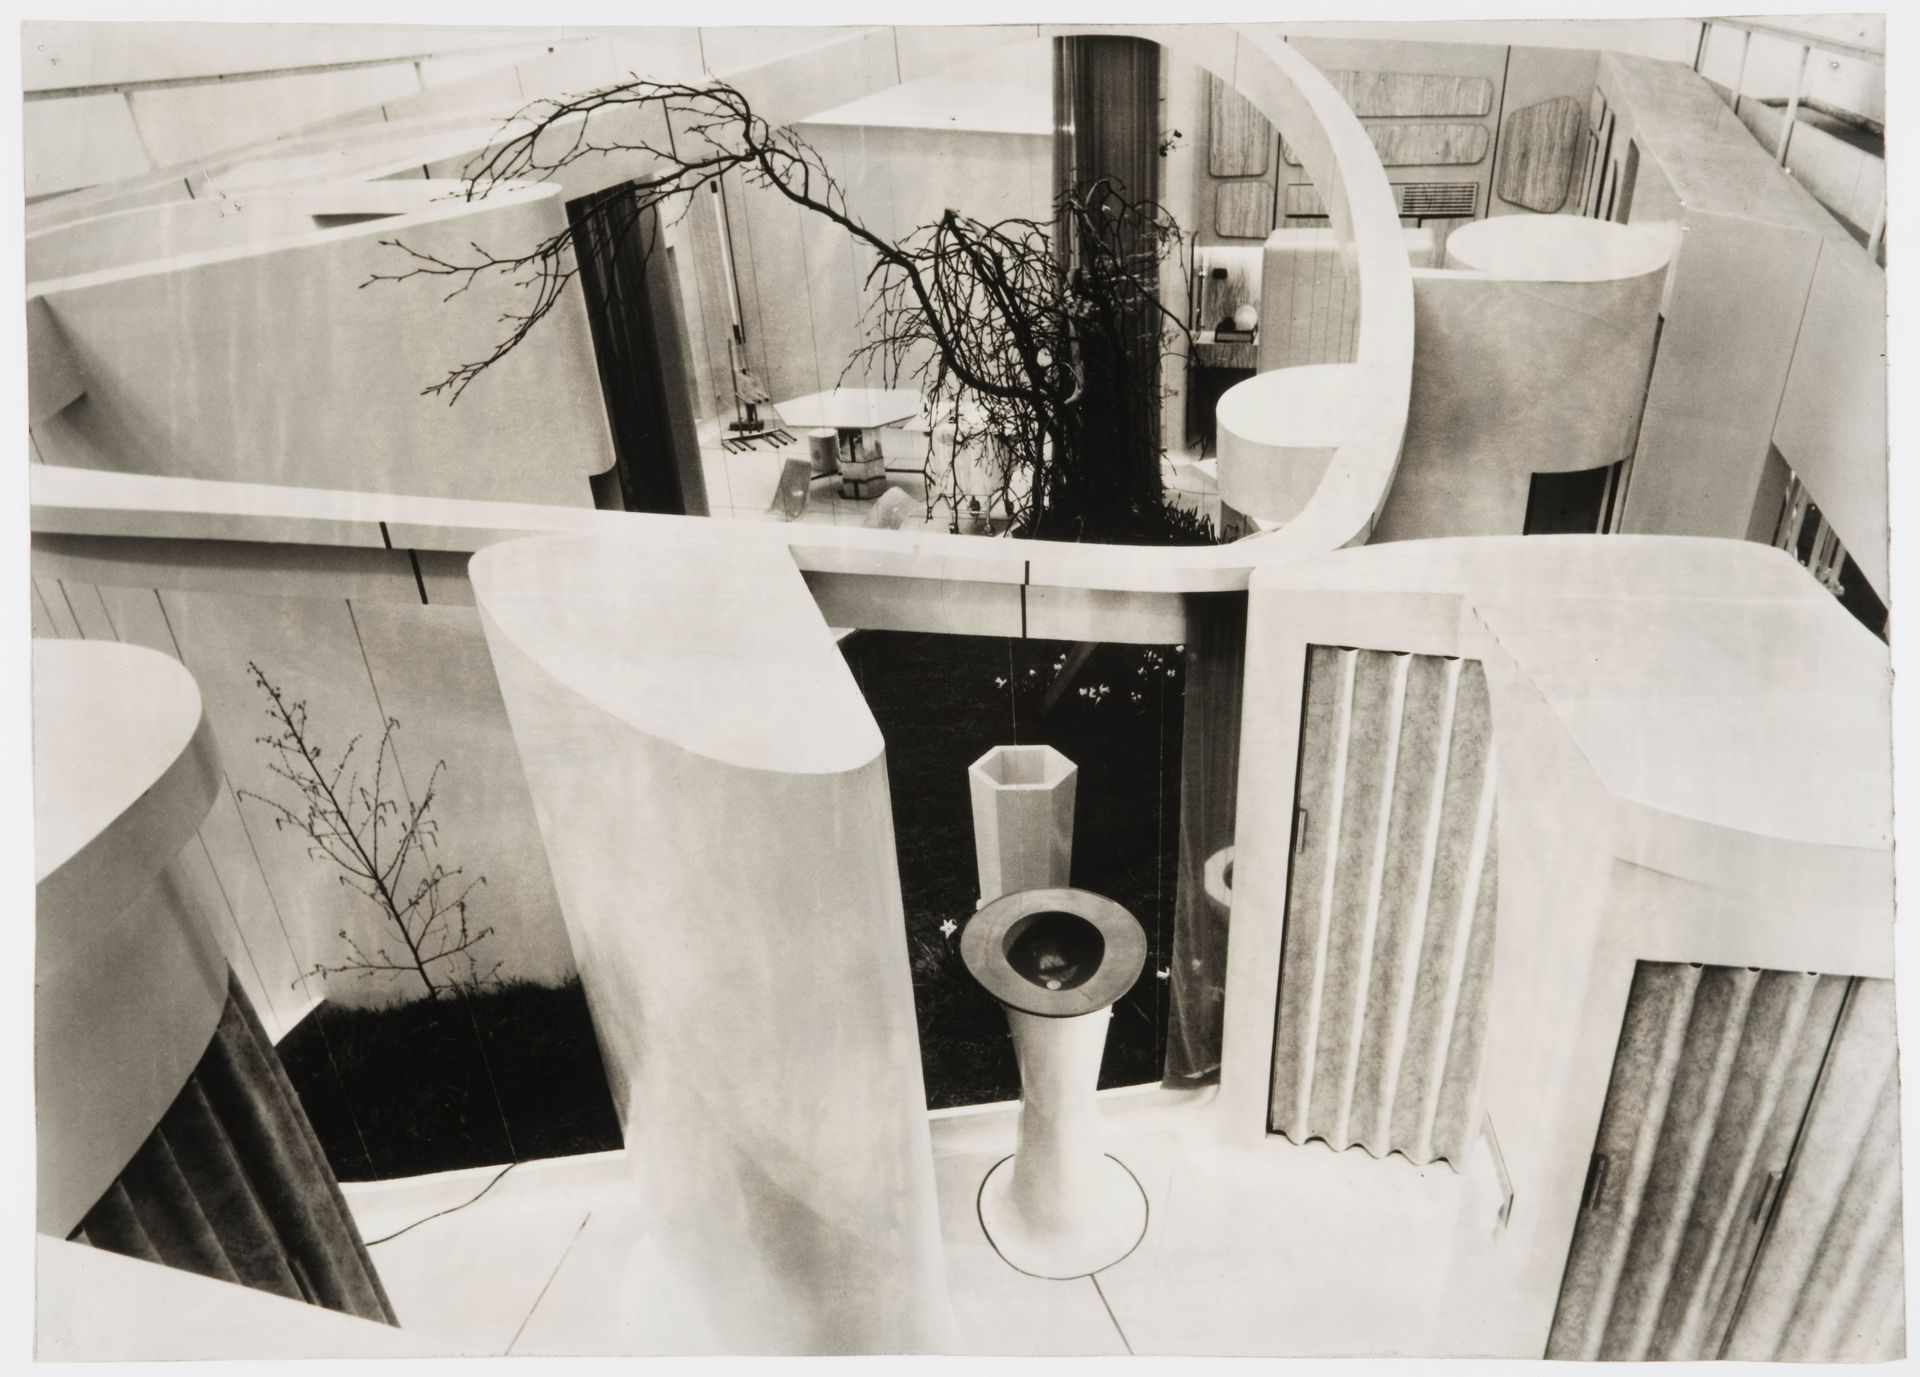 Overhead view of an interior courtyard